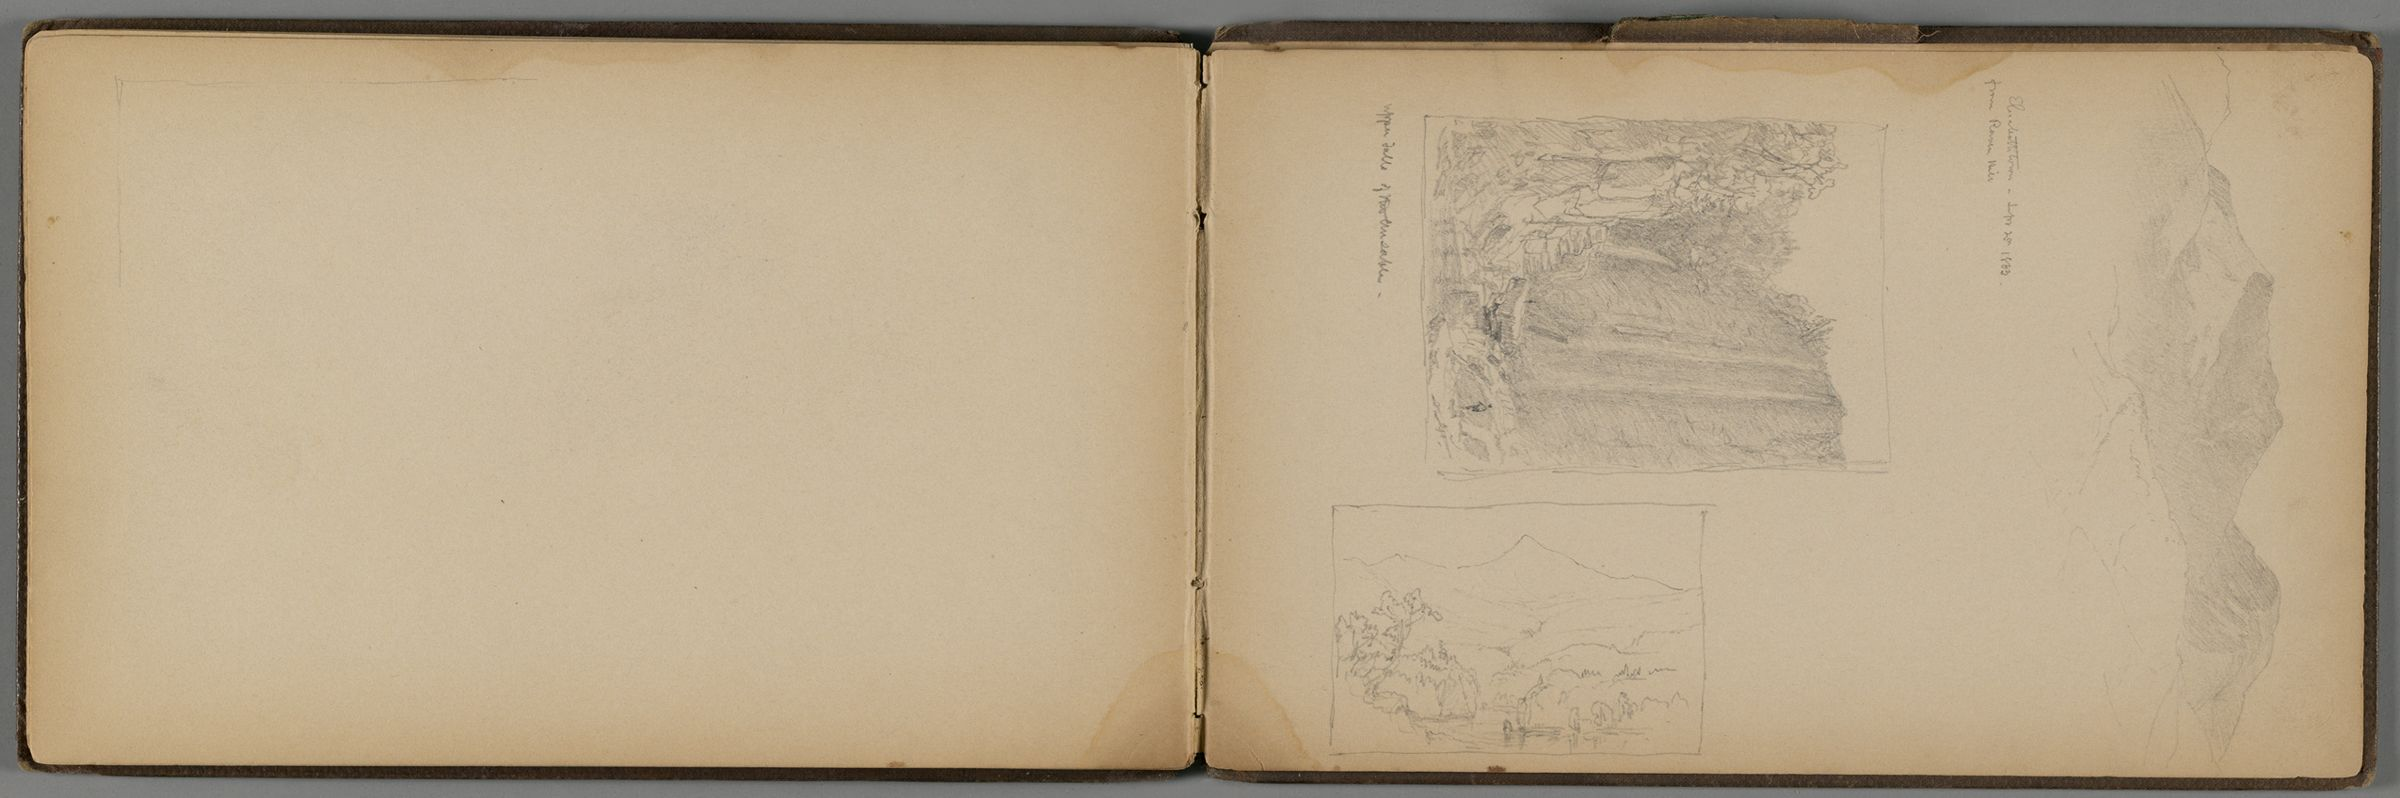 Three Small Landscapes; Verso: Four Small Landscapes And Figure Sketch